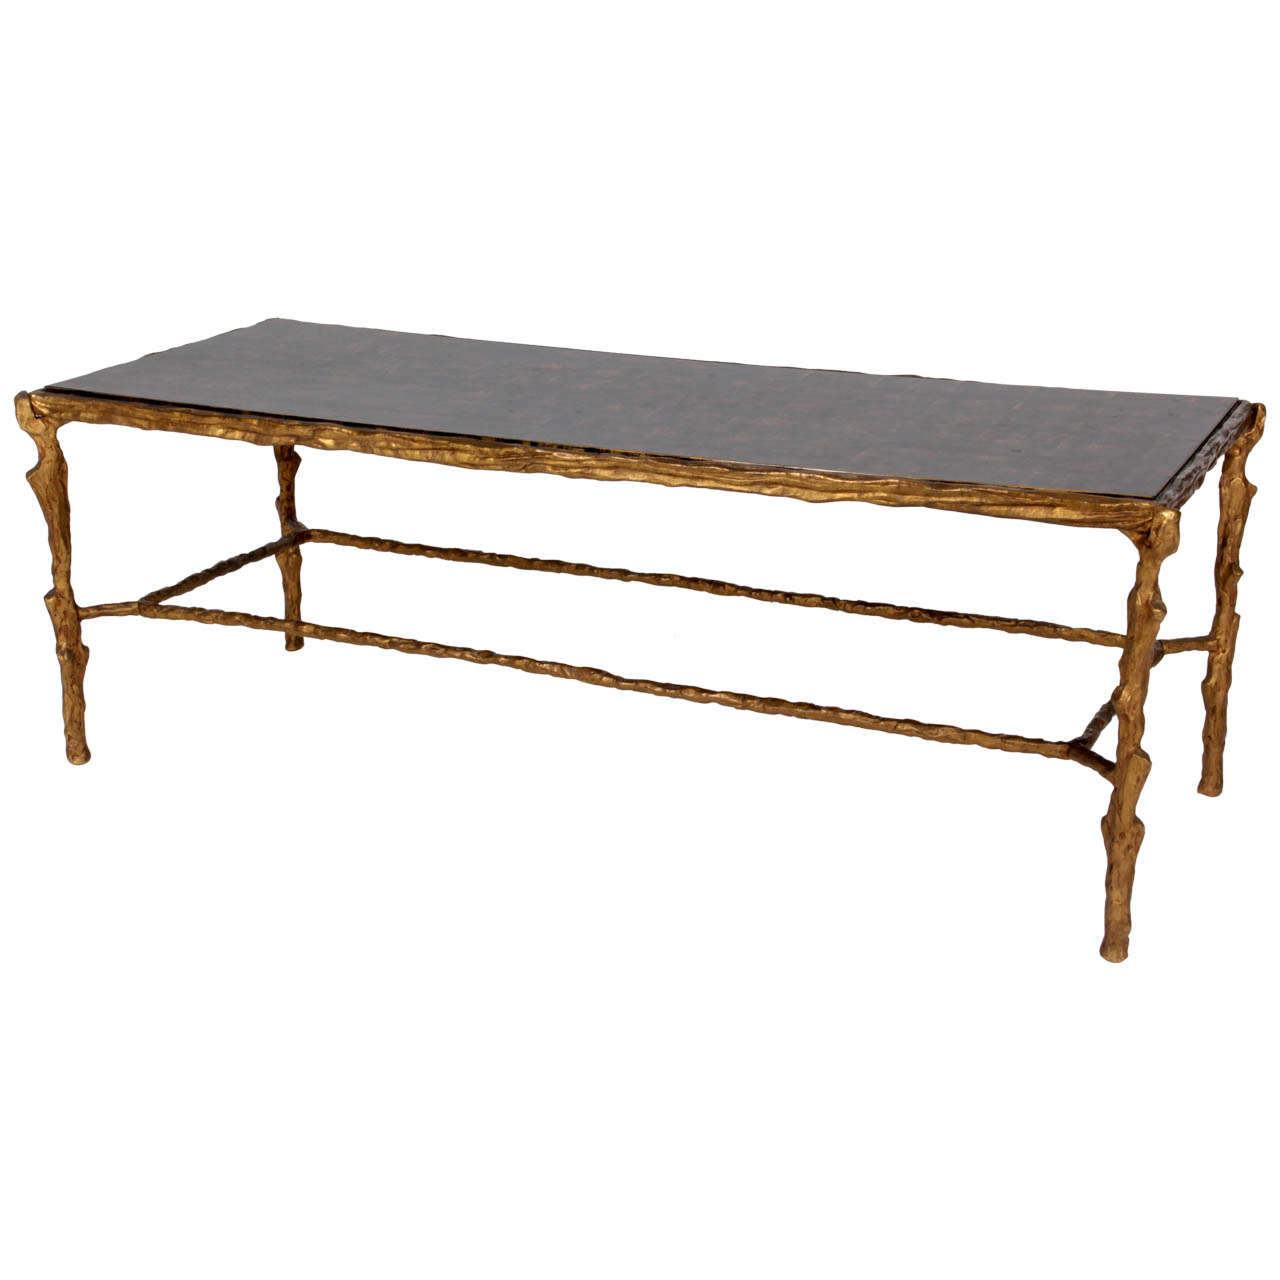 French Art Deco Gilt Bronze Coffee Table C. 1940 At 1stdibs